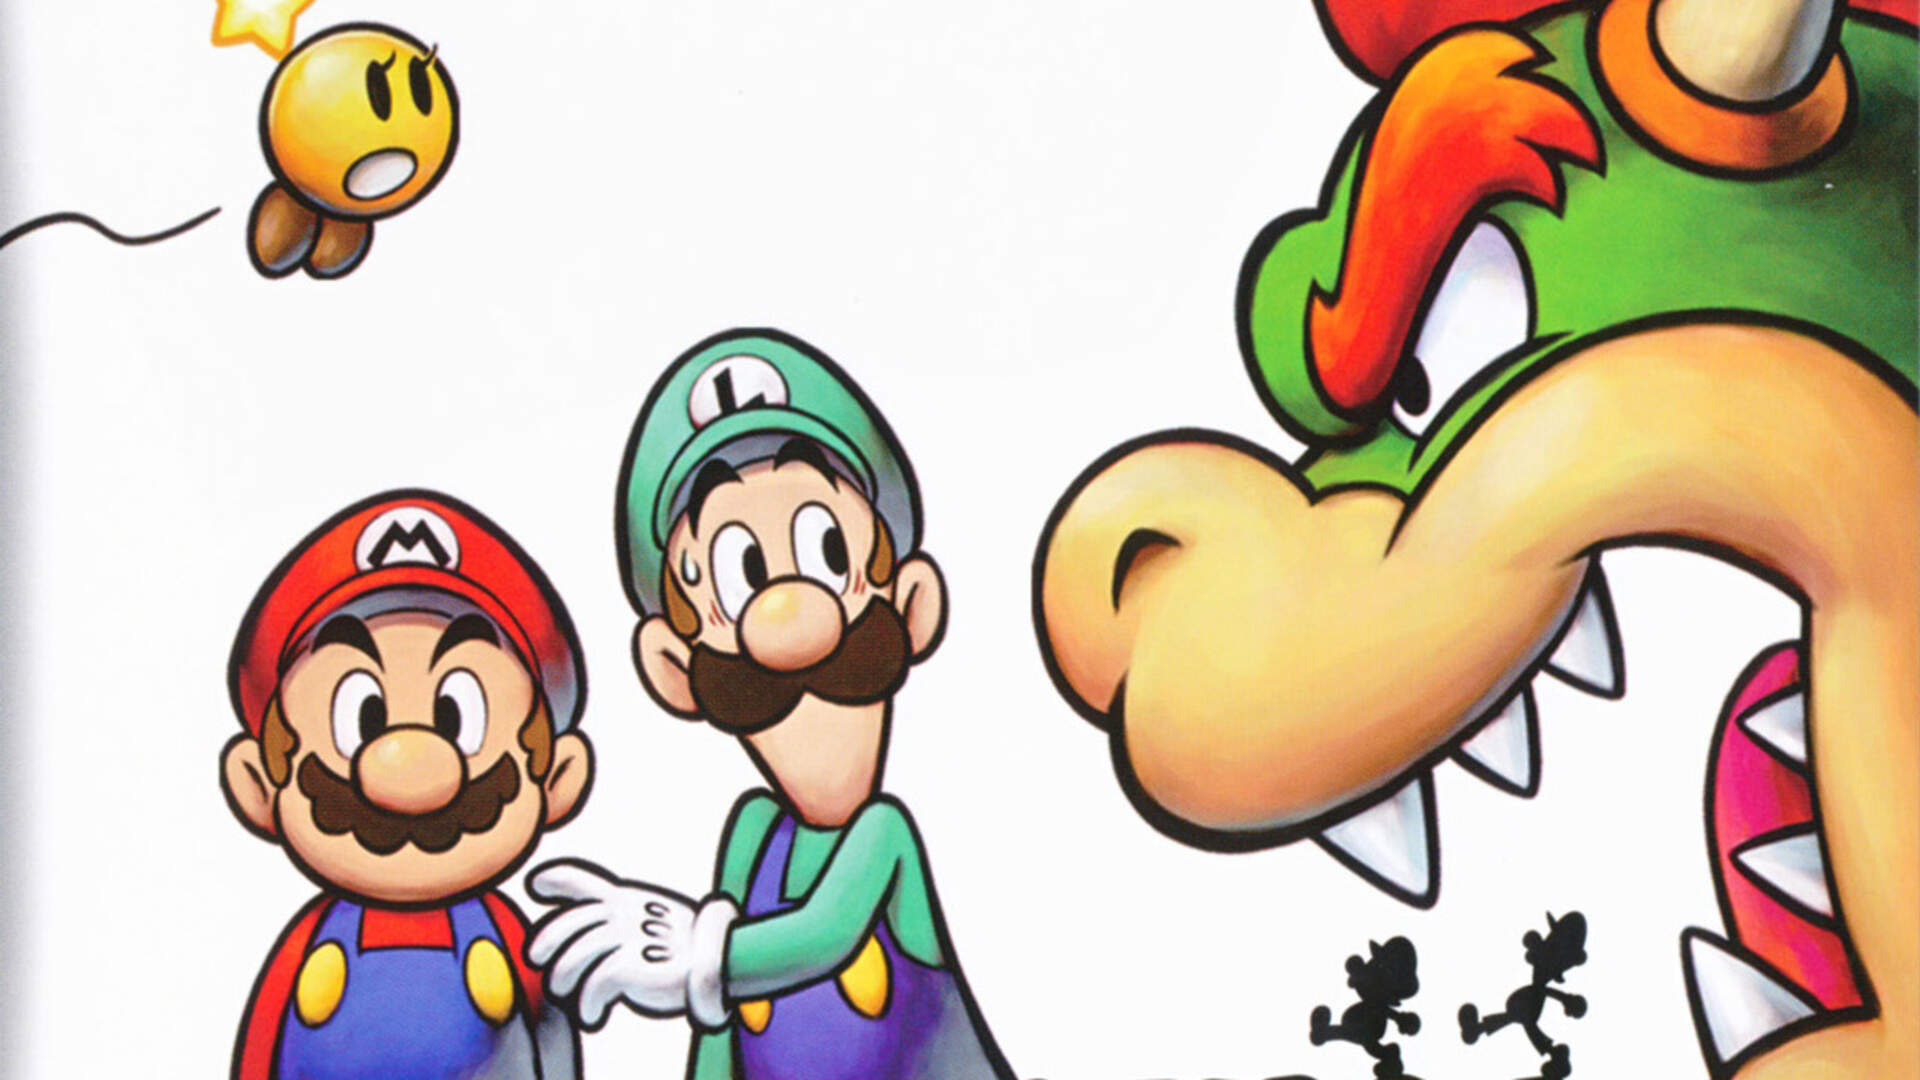 Mario & Luigi Series Developer AlphaDream Files for Bankruptcy